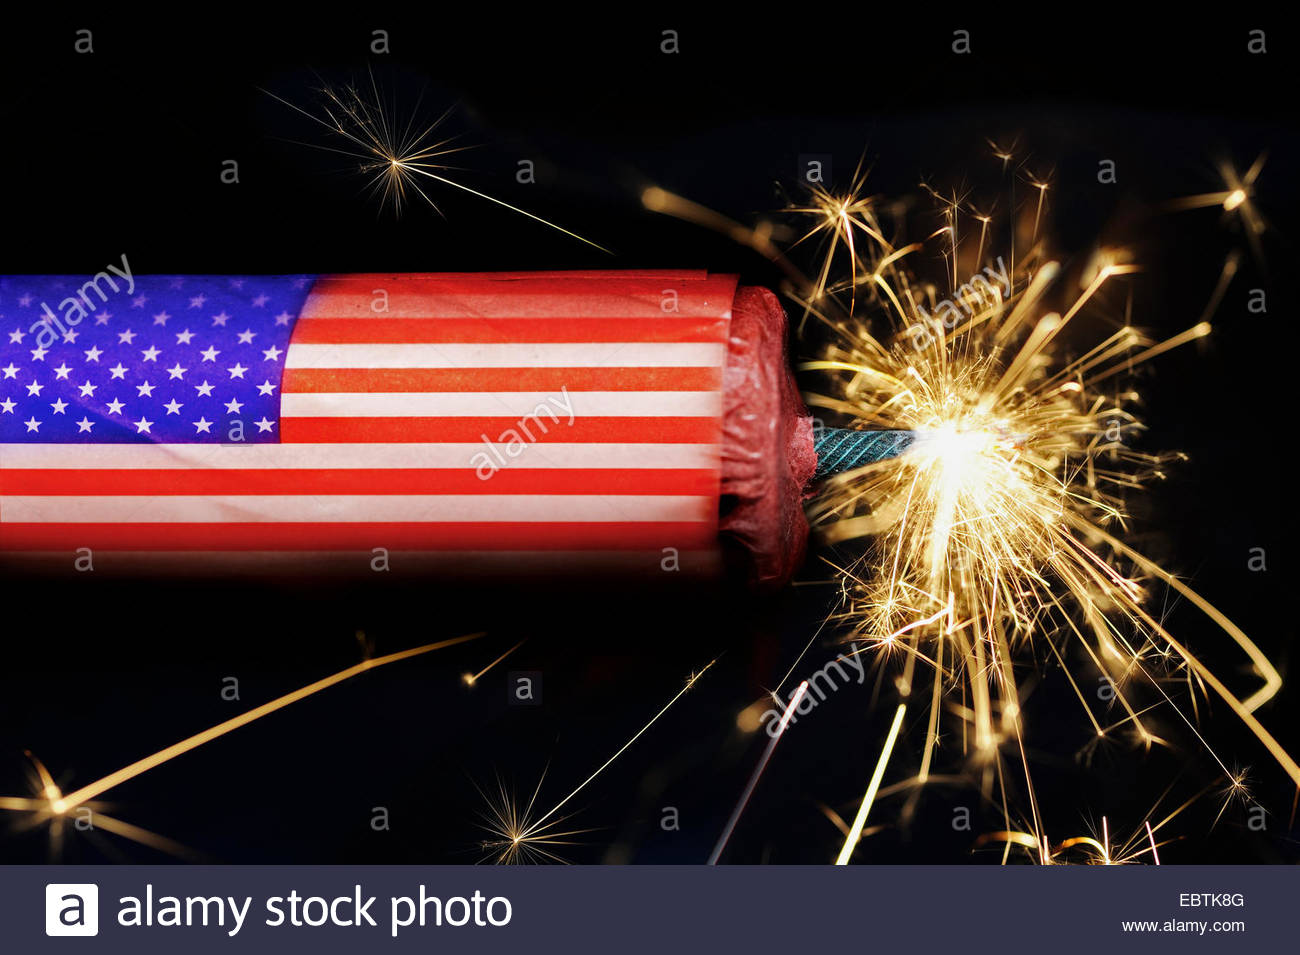 symbol picture 'national debt of the USA': a firecracker with the Star-Spangled Banner on it and with a - Stock Image